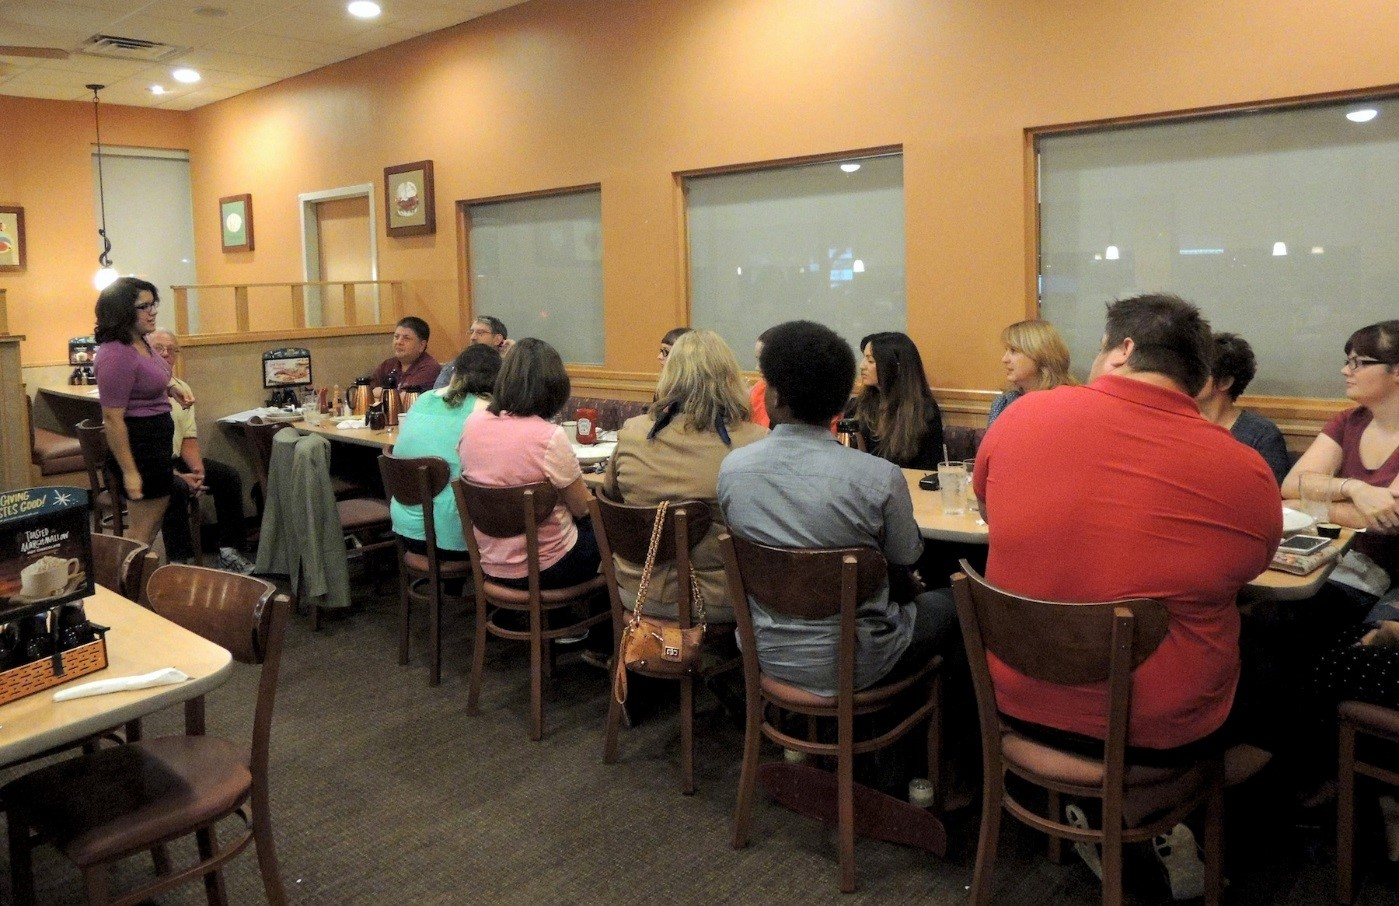 First kickoff meeting, led by Nicole Garcia and Dan Voss at the local IHOP. Here, the mentors and mentees first got to know one another and planned what they wanted to work on throughout the year.